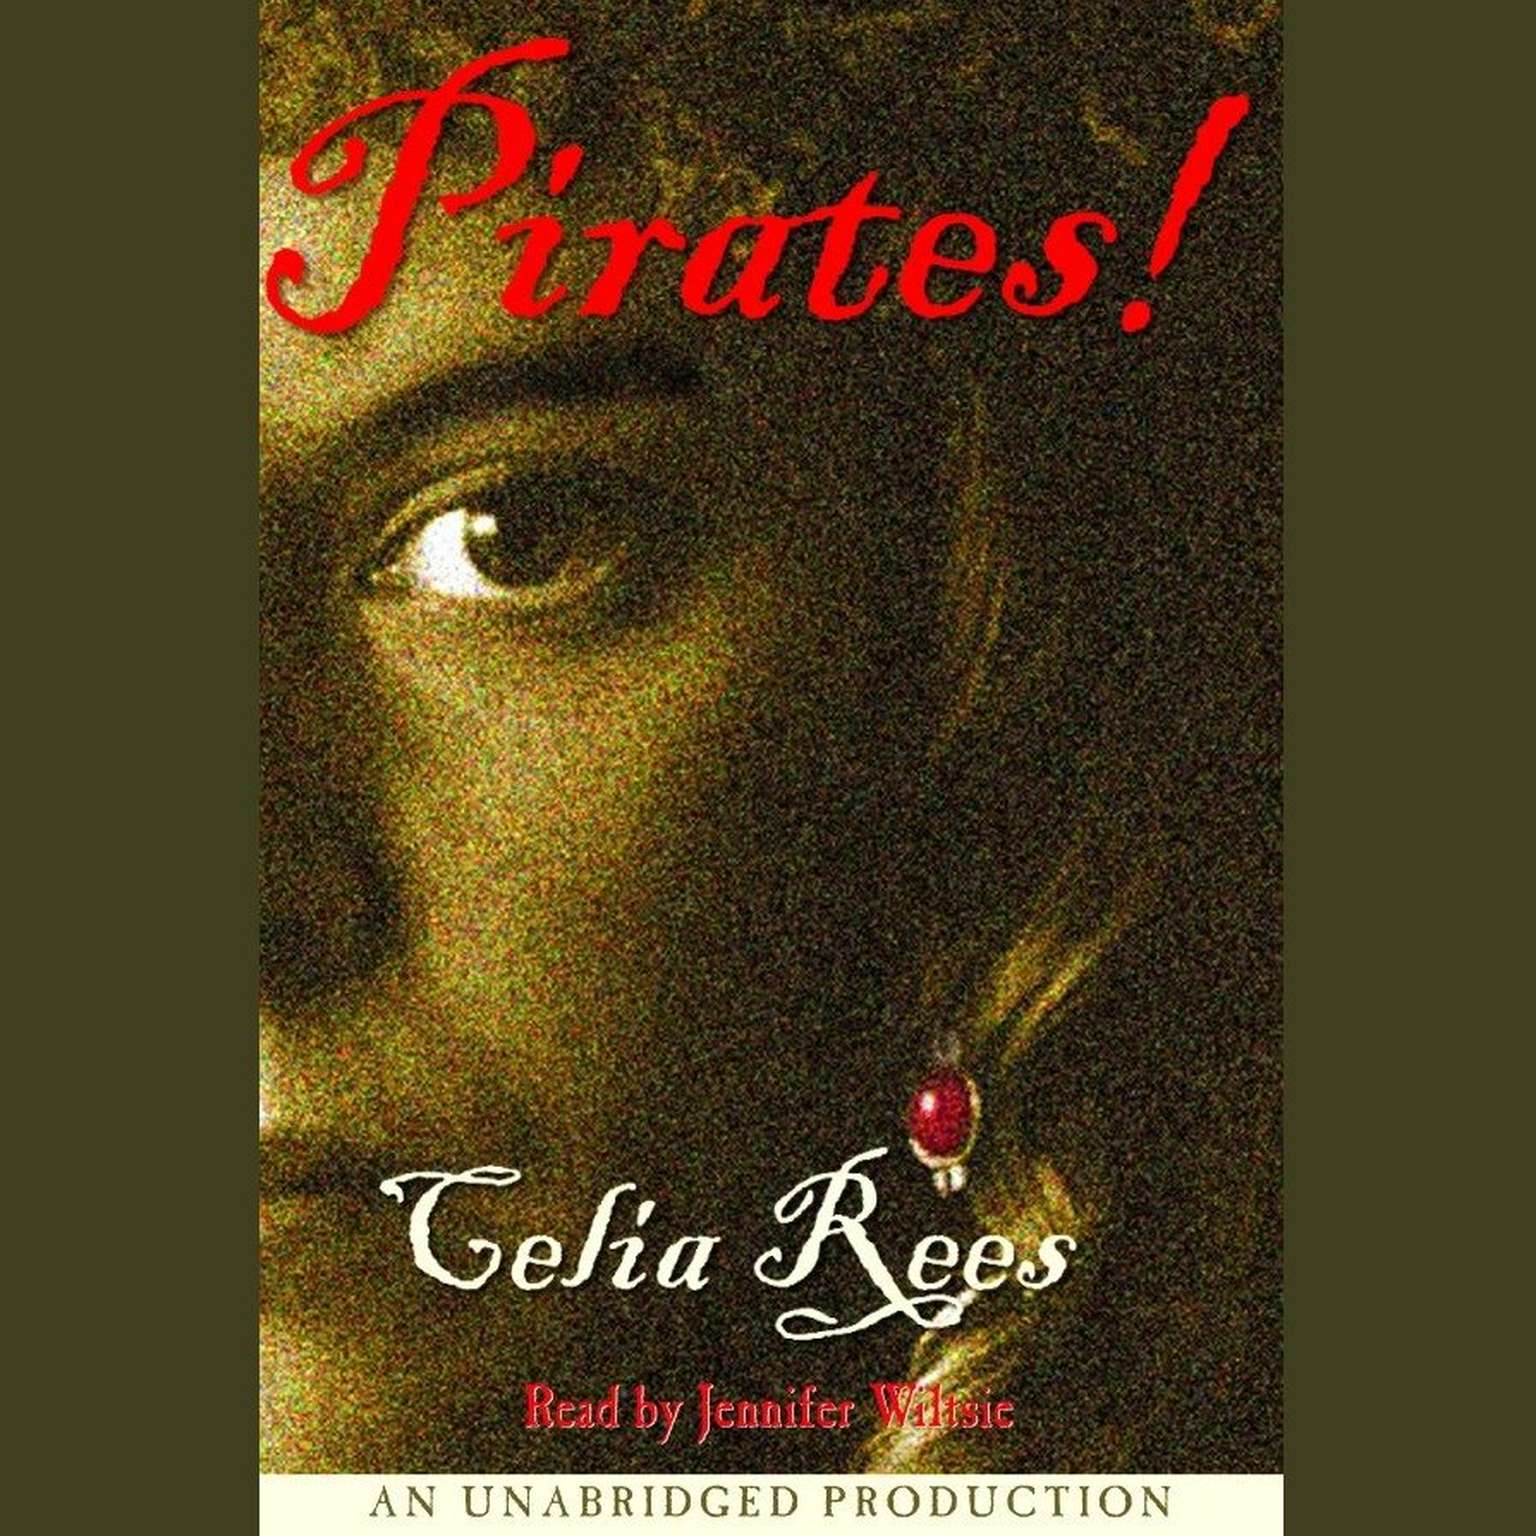 Printable Pirates! Audiobook Cover Art